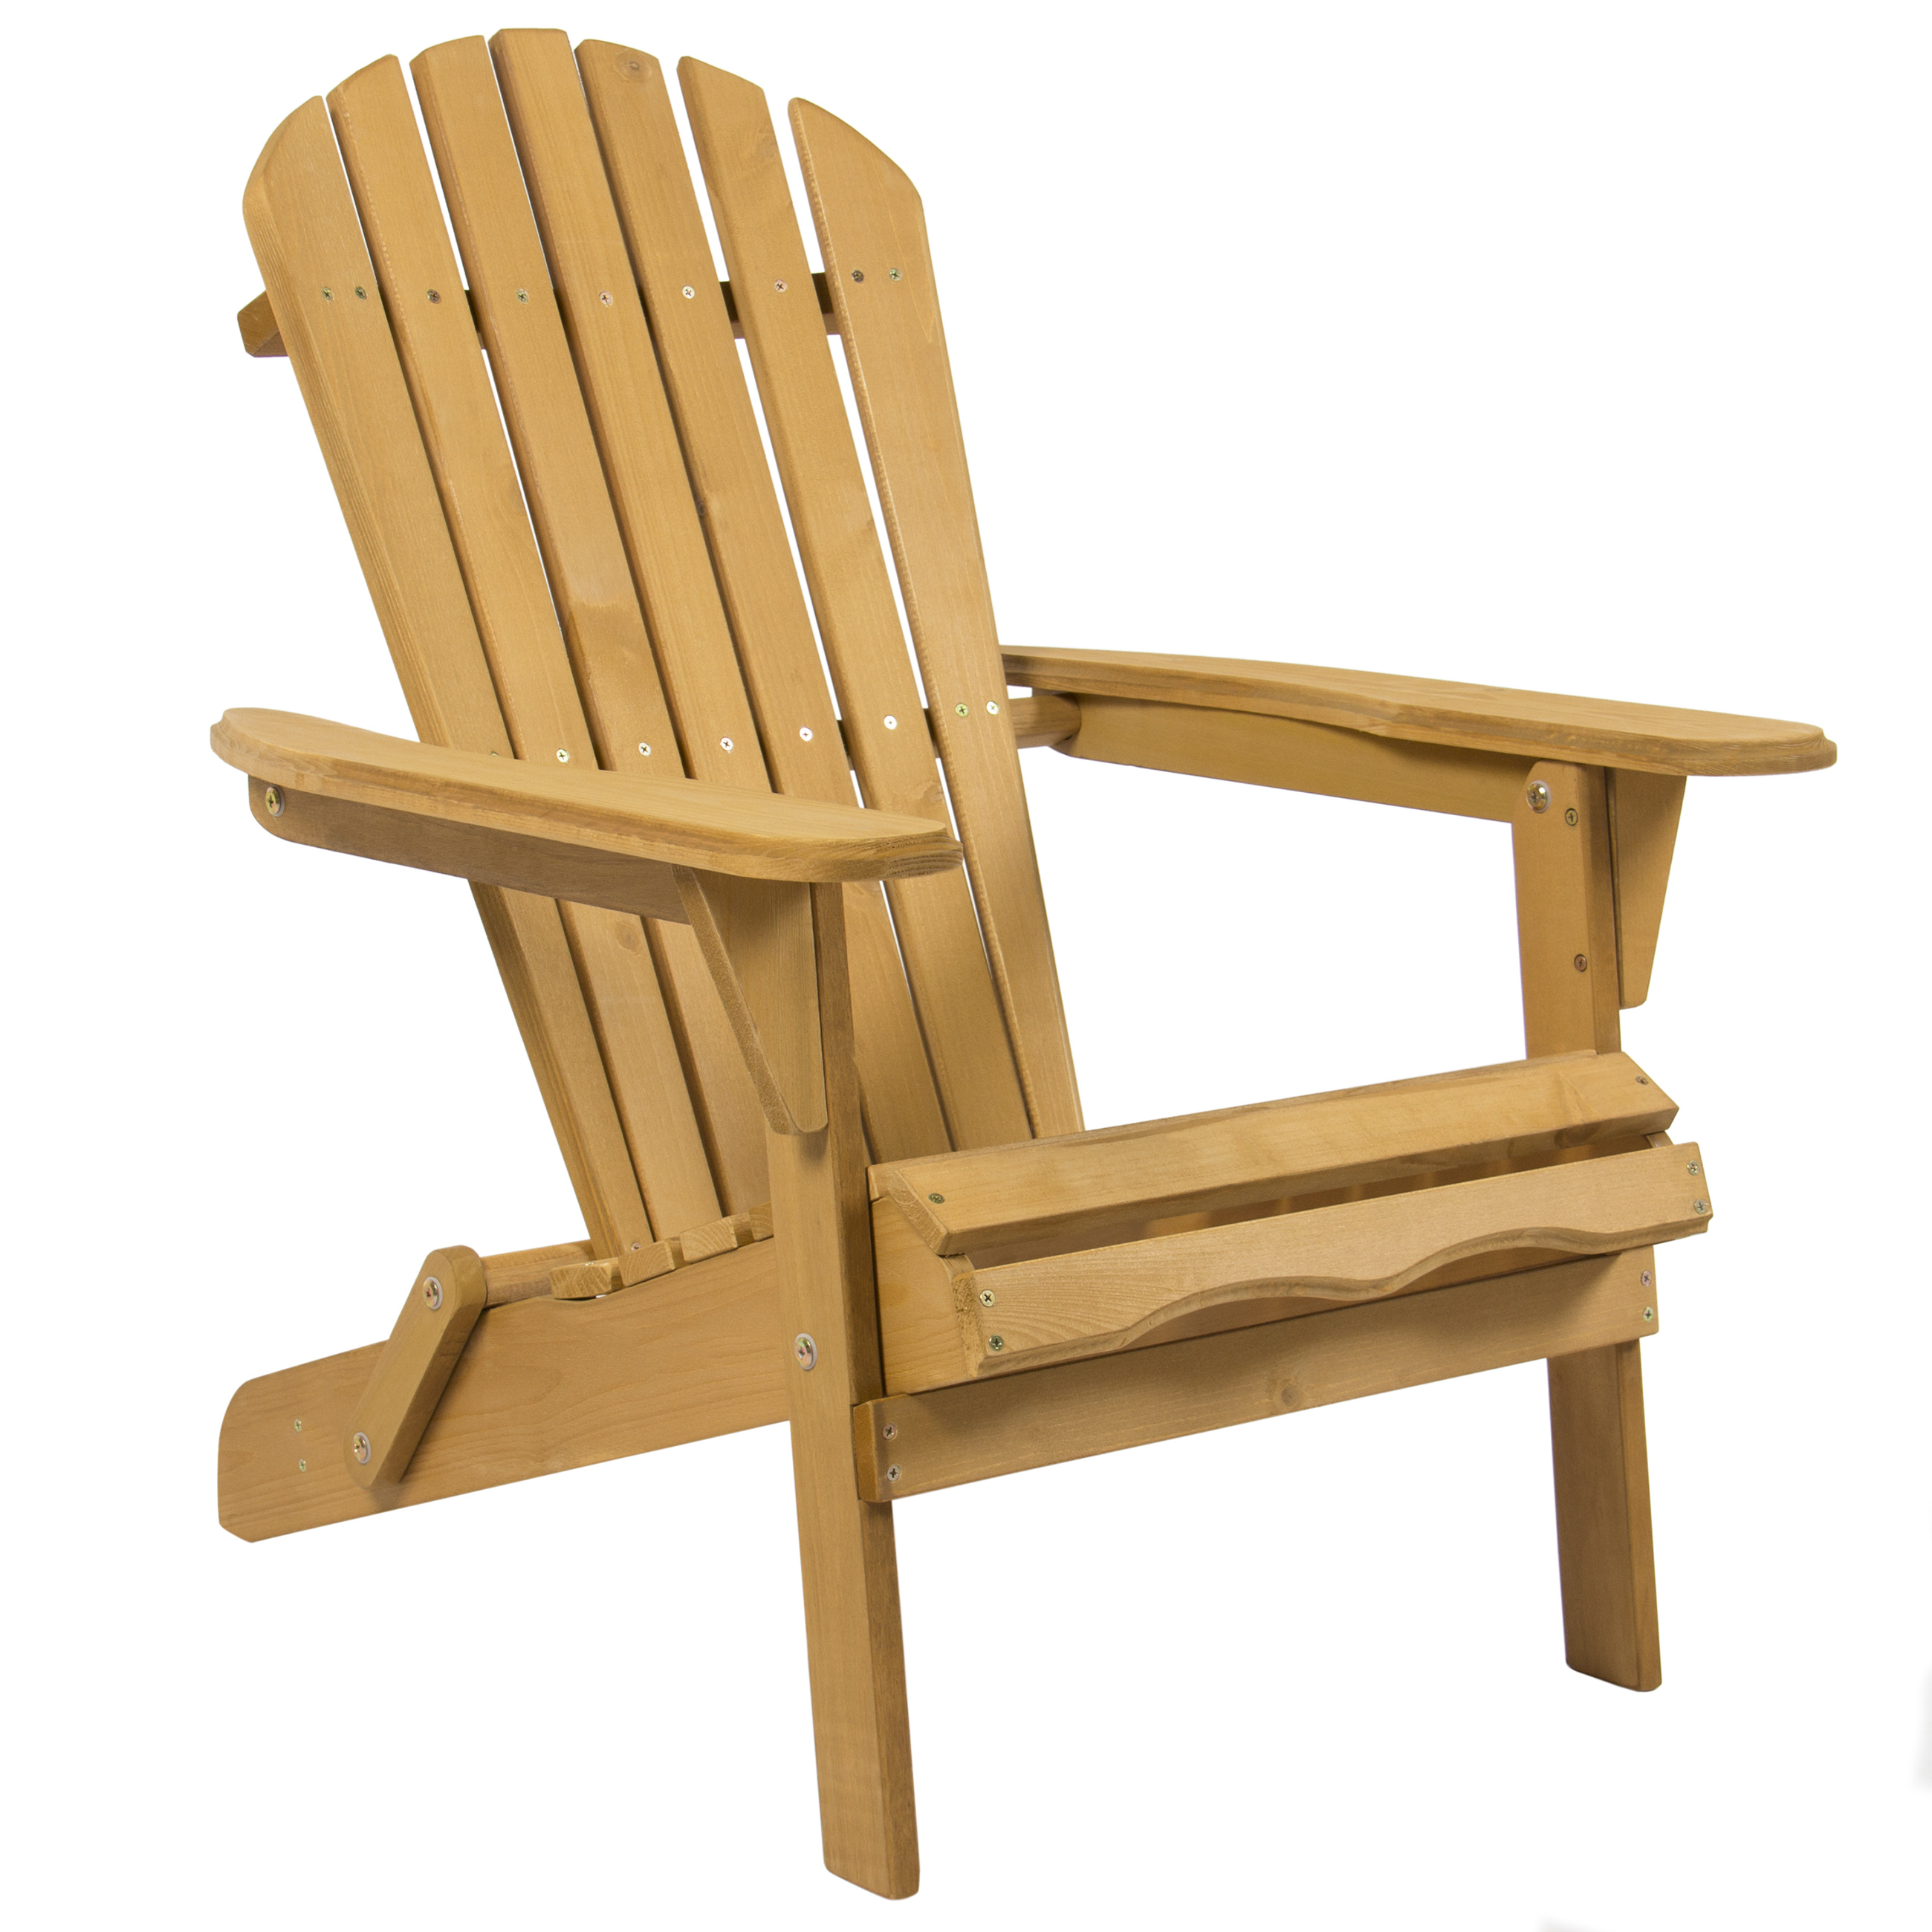 wooden porch chairs sample chair cover rental agreement best choice products outdoor adirondack wood foldable patio lawn deck garden furniture walmart com